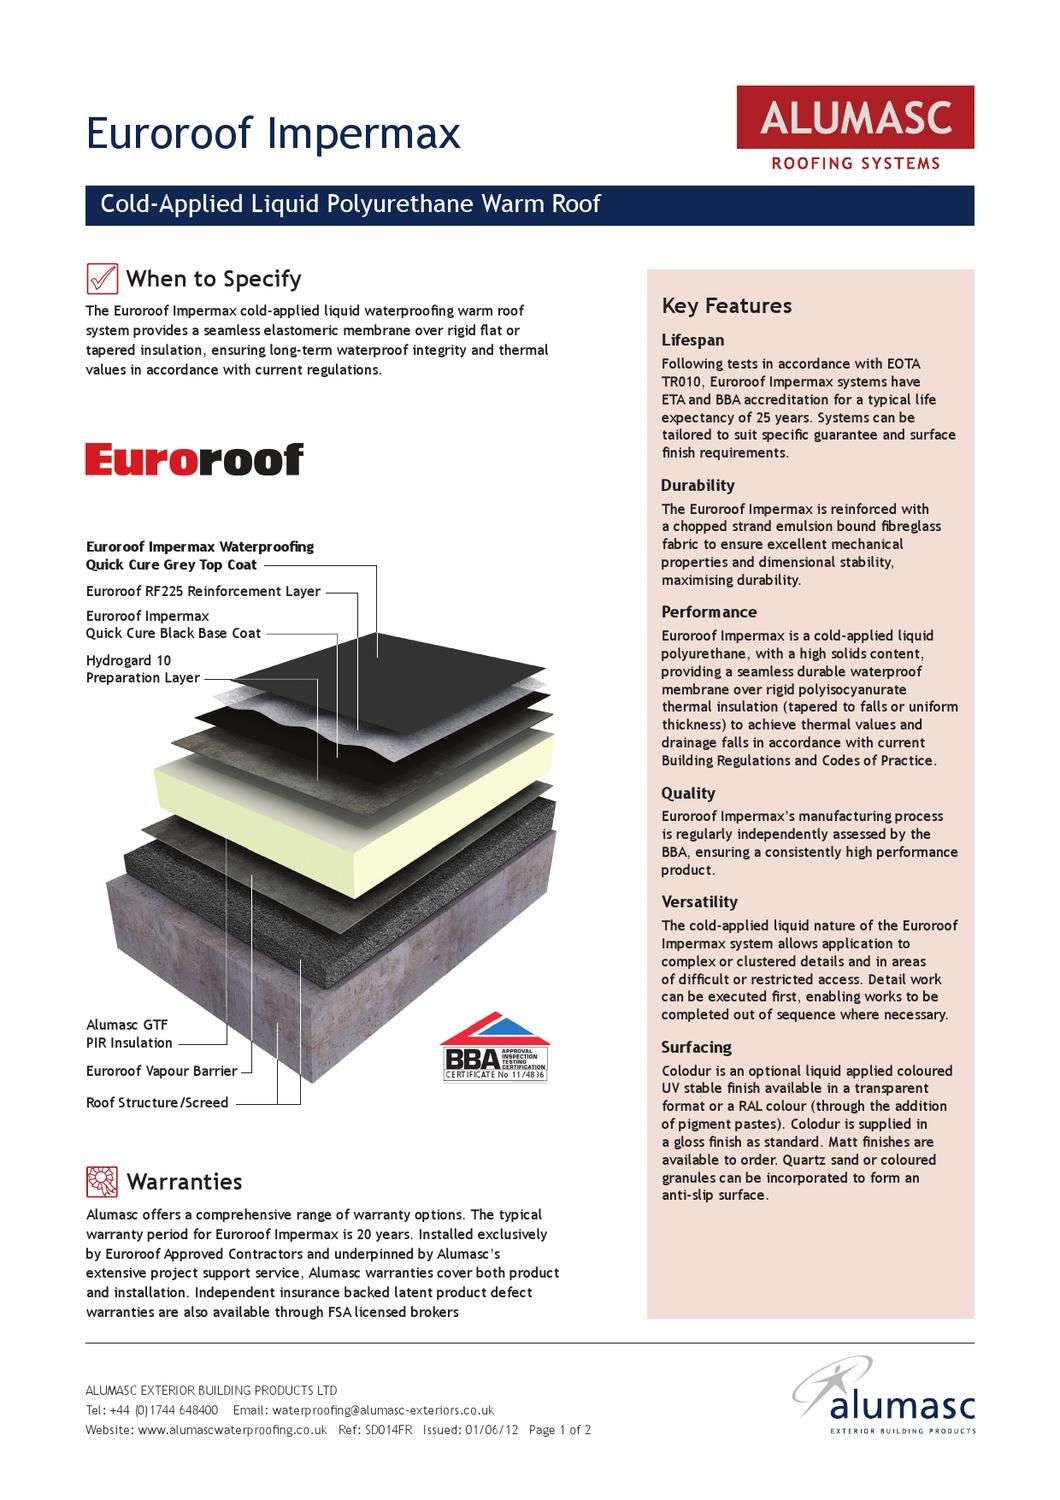 Ss14 Euroroofimpermax Warm Liquid Cold By Alumasc Exterior